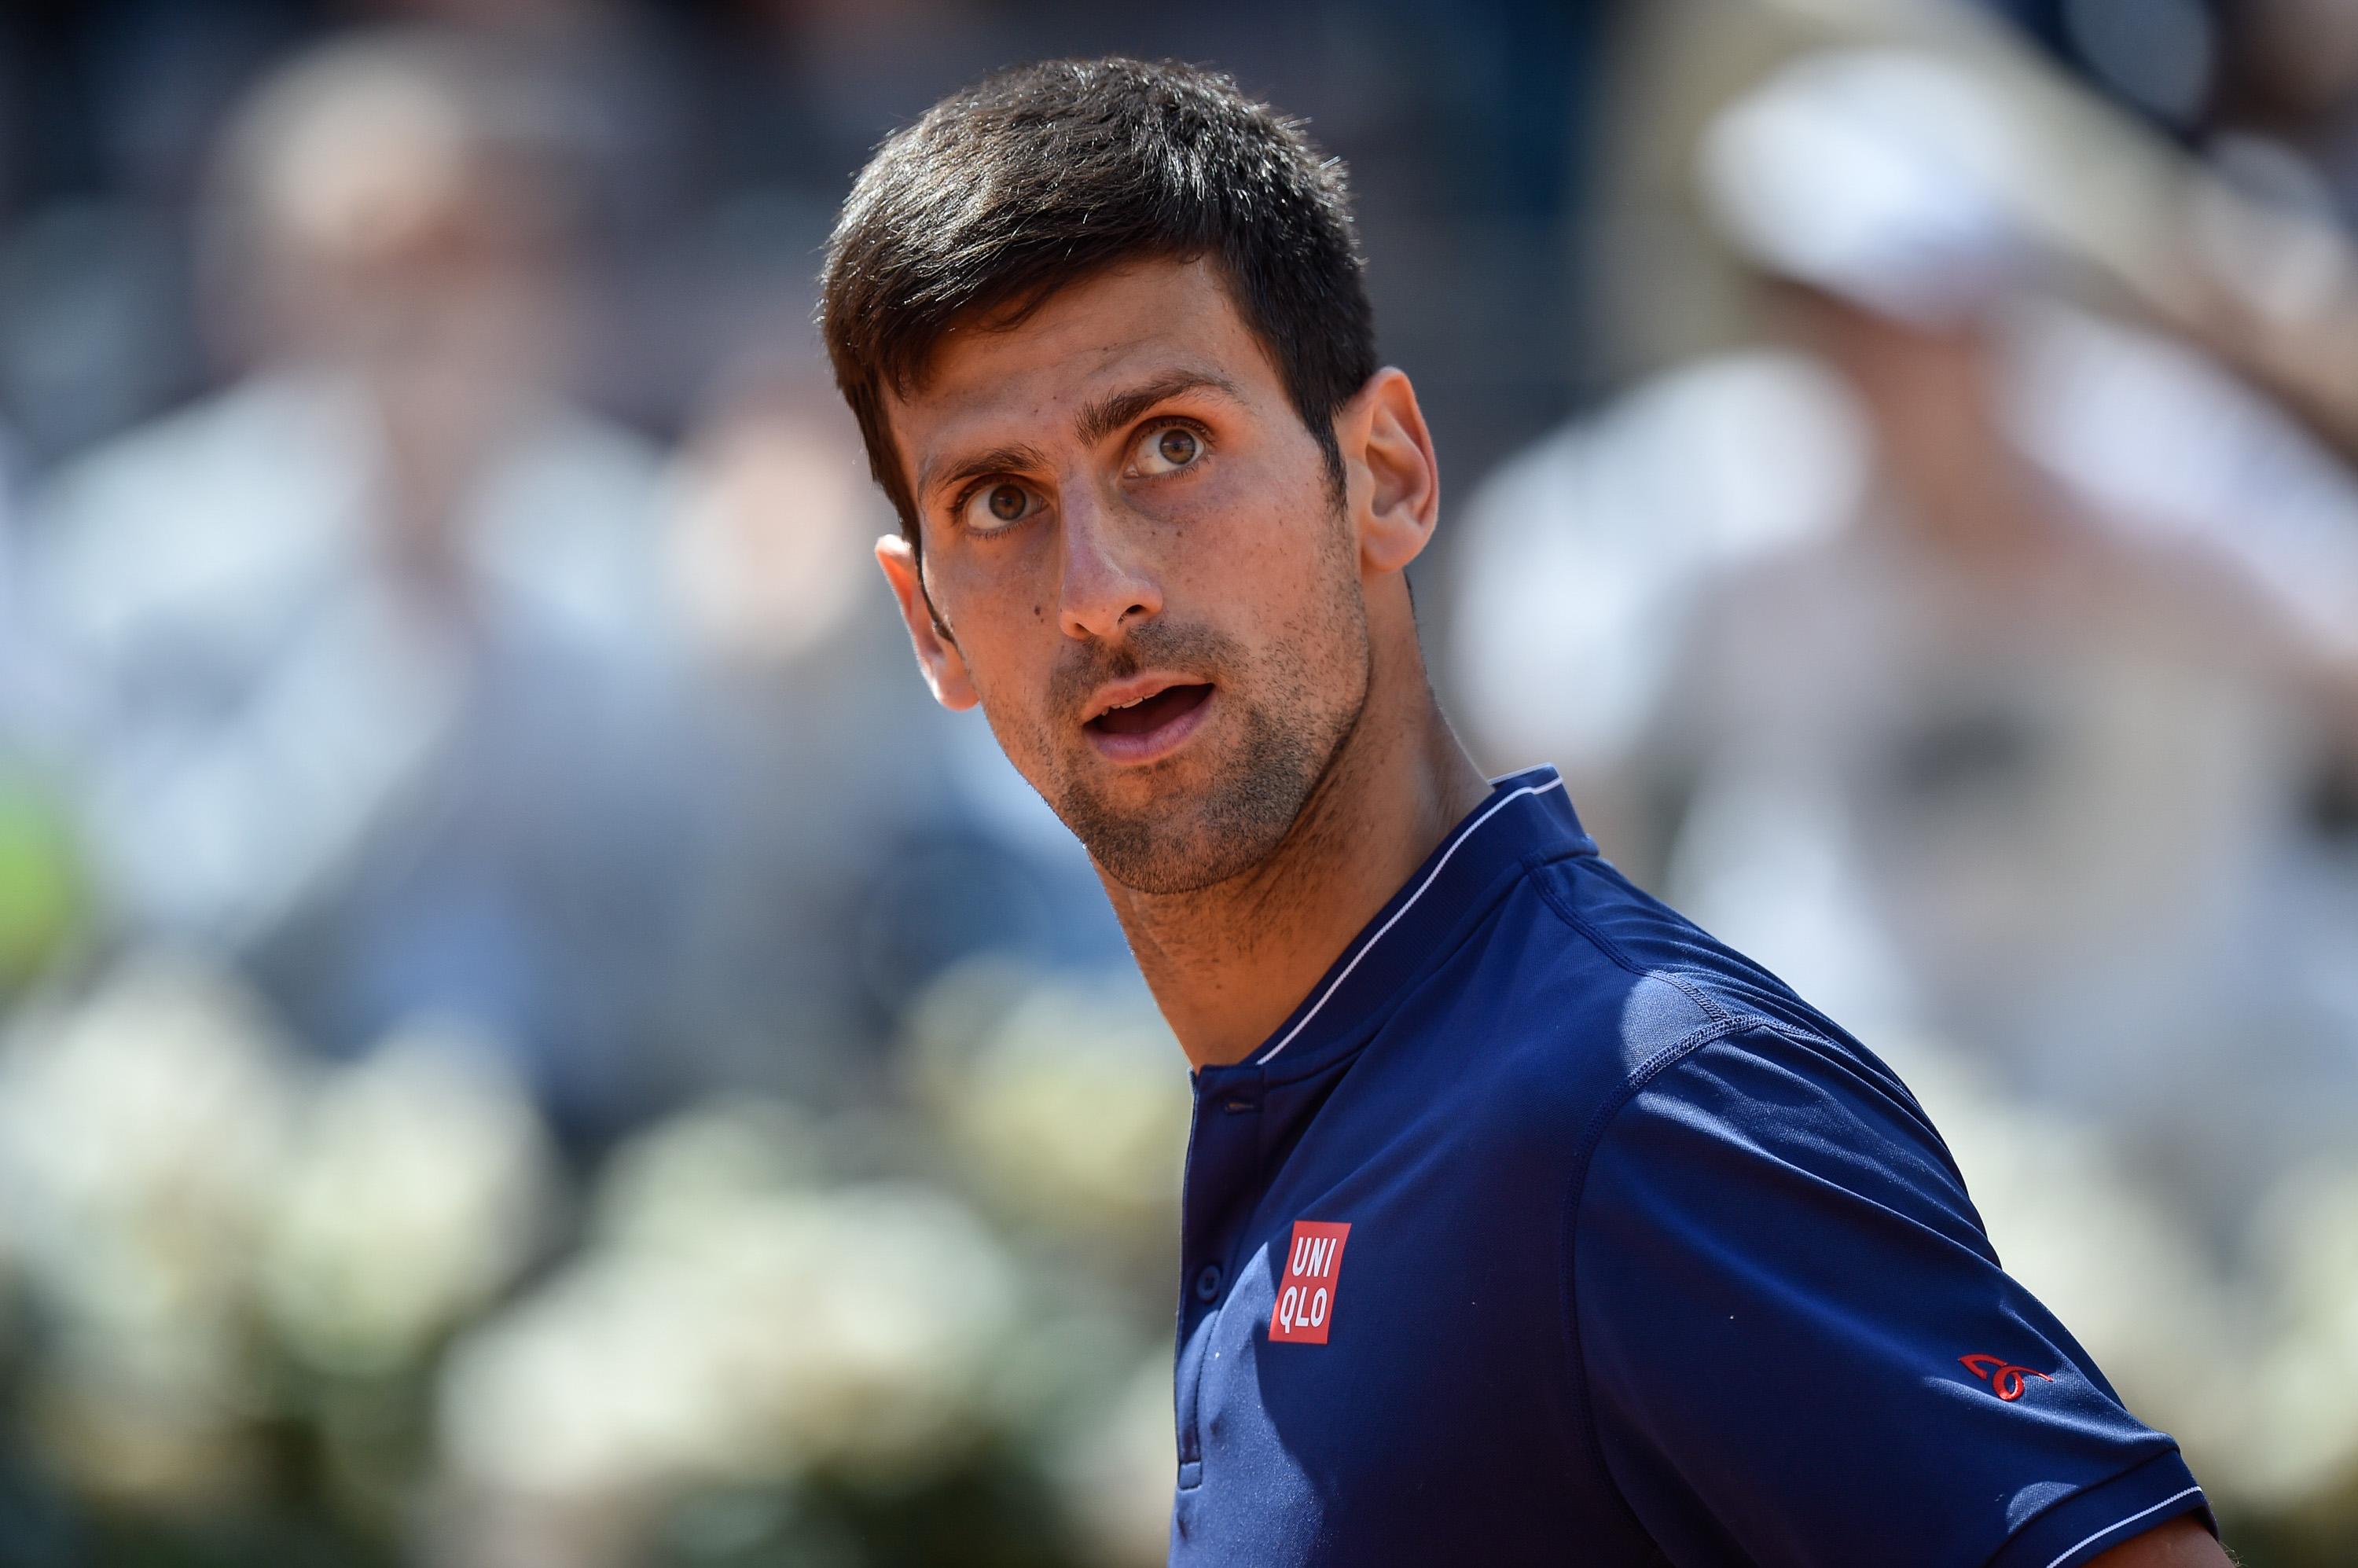 Novak Djokovic announces Andre Agassi as new coach ahead of French Open